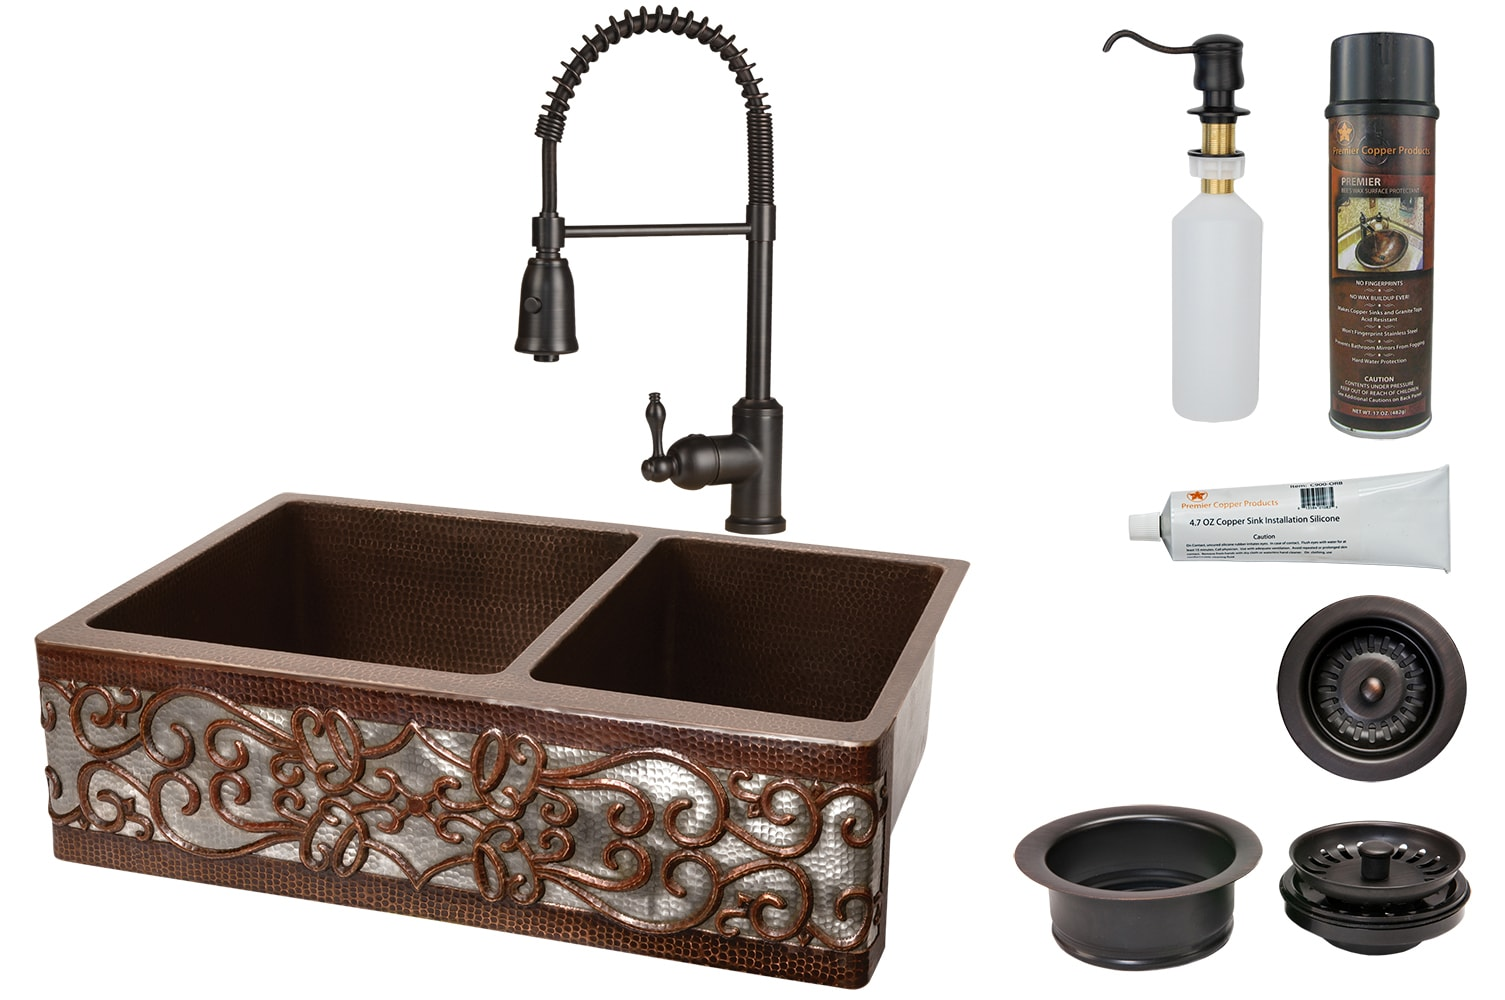 Premier Copper Ksp4 Ka60db33229s Nb 33 Kitchen Sink Faucet And Accessories Package